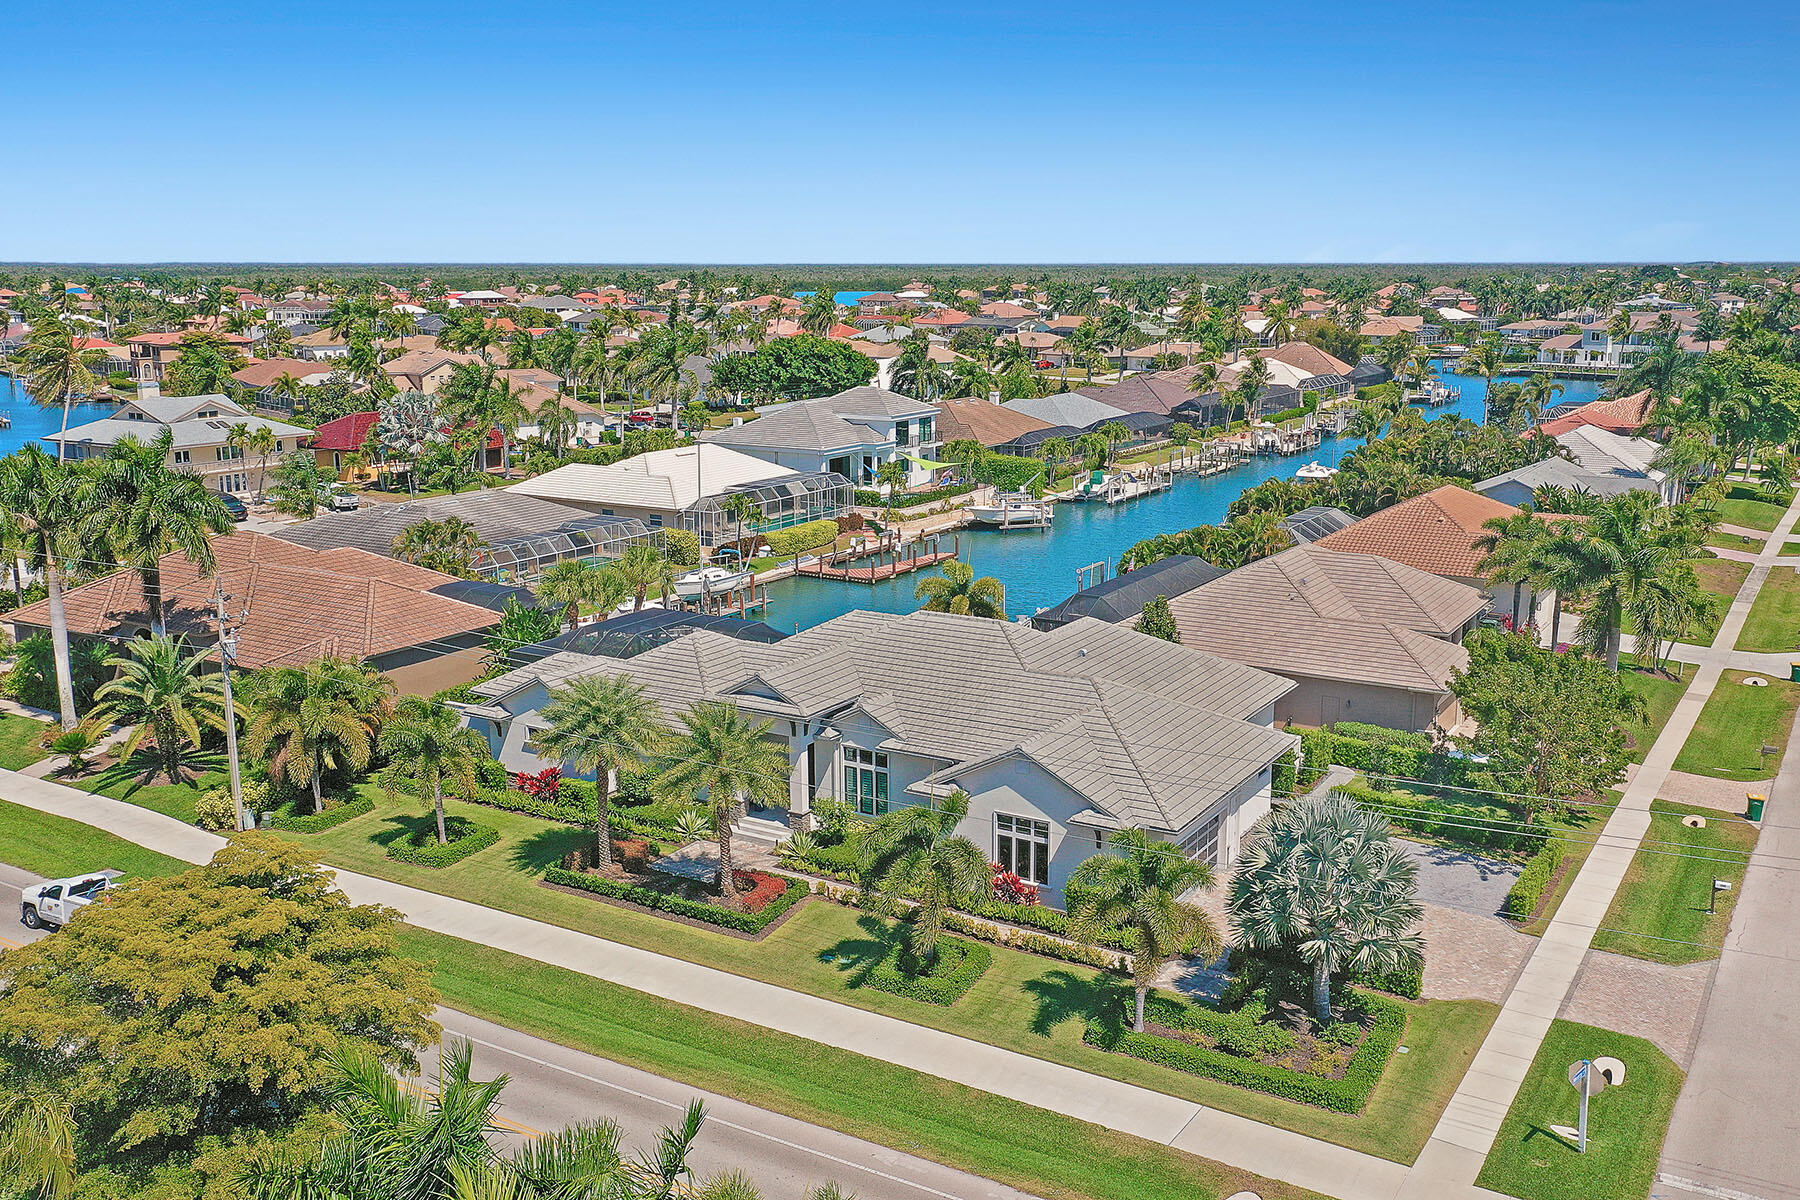 Gorgeous contemporary home located on an oversized corner lot with water direct access to the Marco River. This luxurious furnished home has it all with gorgeous decor and exquisite lavish details throughout. Light and bright open floor plan with spacious great room design and separate office that include beautiful built-ins. A Chef's dream gourmet kitchen that comes with custom cabinetry, over-the-top appliances, pantry, two breakfast bars, and separate dining area. Whole-house automation, Crestron lighting control system, tray ceilings, designer tile, baths, counter-tops, fixtures, and top-quality finishes. The sweeping veranda is outdoor living at it finest and has everything you need with pool, spa, bar, summer kitchen, drop down shutters /screens, and plenty of space to entertain and enjoy the long water canal views. Impact glass windows and doors, whole-house generator, pavered driveway and sidewalk that encircles the home for easy walking. Extended parking for additional vehicles and side entry garage. Deeded dock with lift that includes your own sundeck! New Seawall 2016. Surrounded by plush tropical landscaping. Make this home your piece of paradise today.